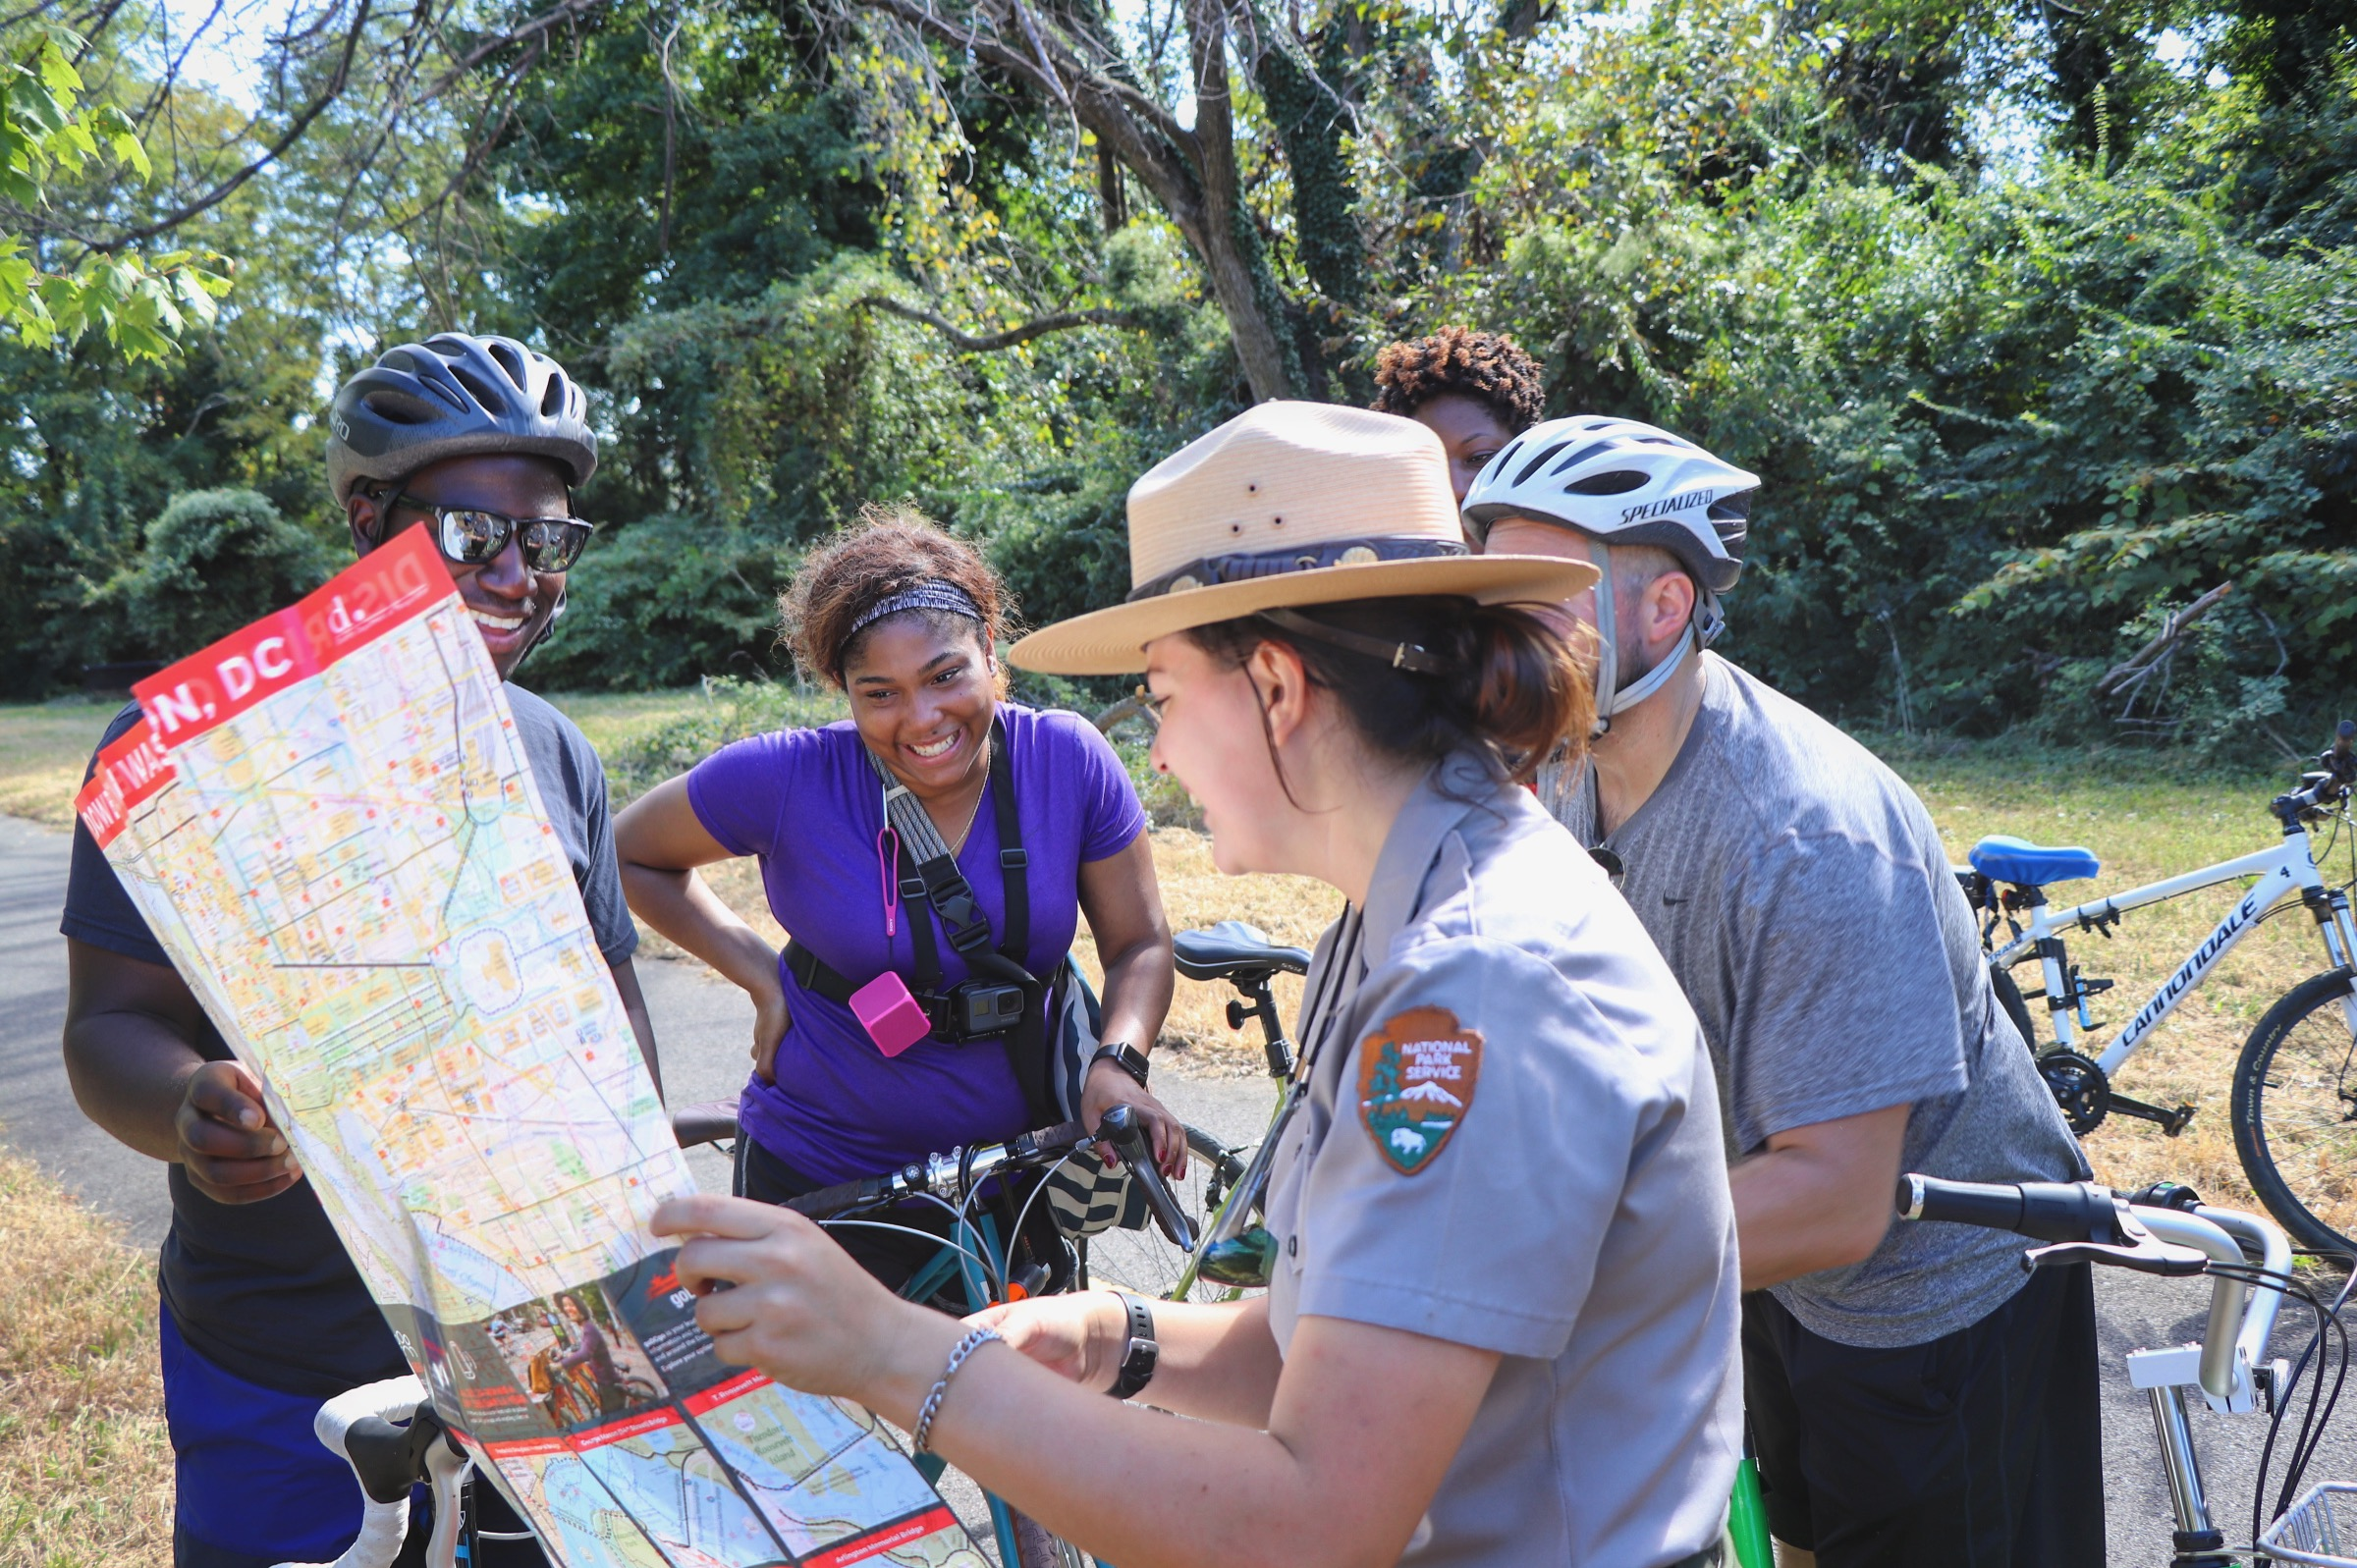 Park ranger provides directions with map to visitors on bikes on the Anacostia Riverwalk Trail